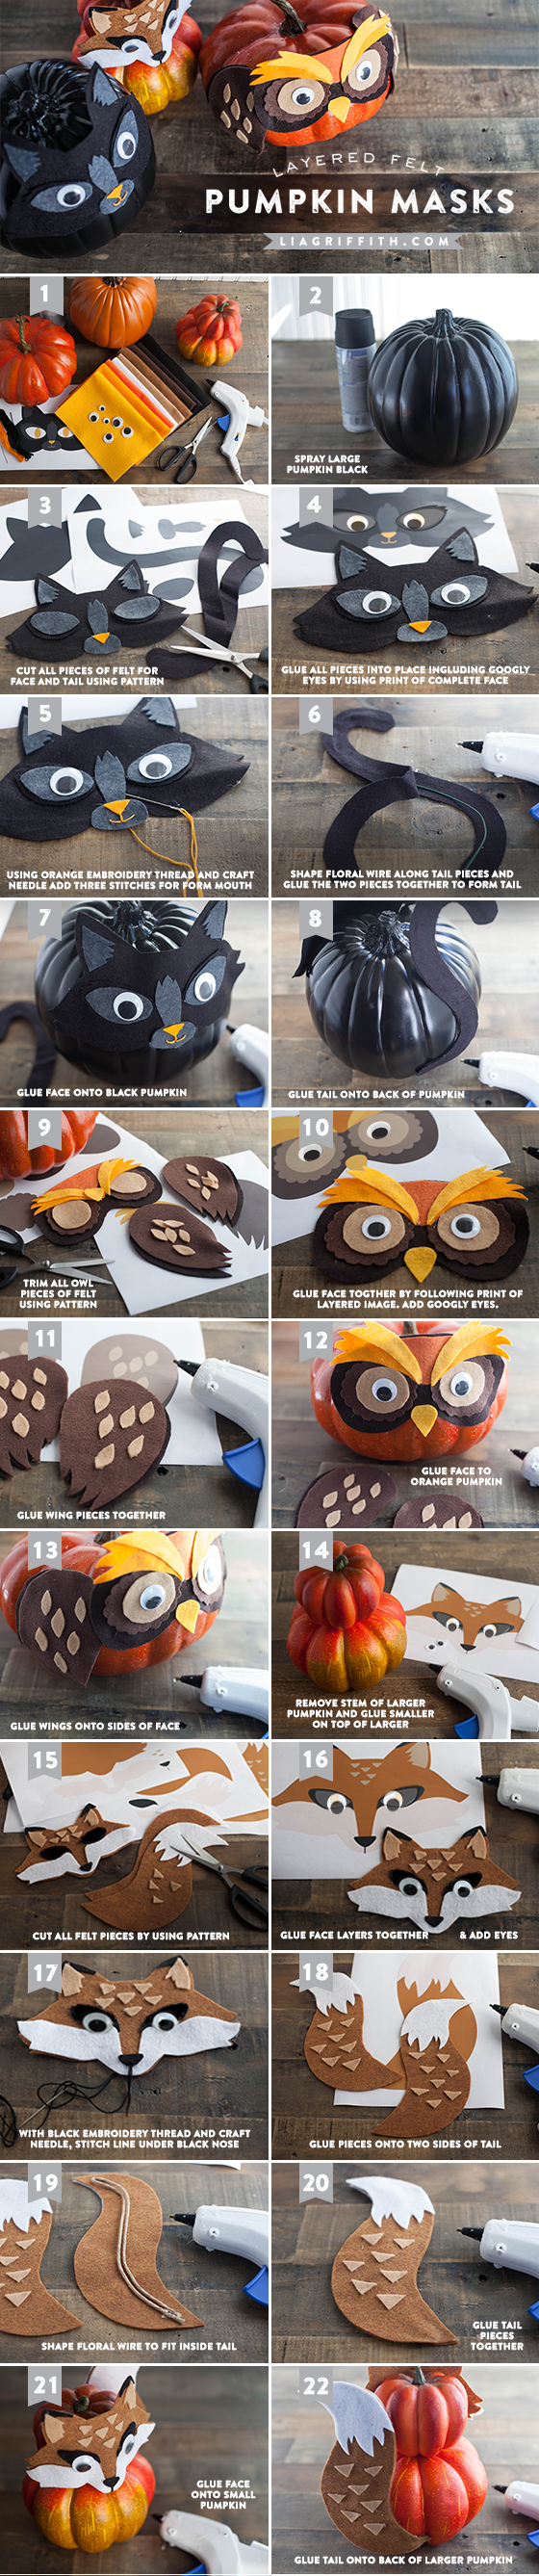 Photo tutorial for animal pumpkin masks for Halloween by Lia Griffith